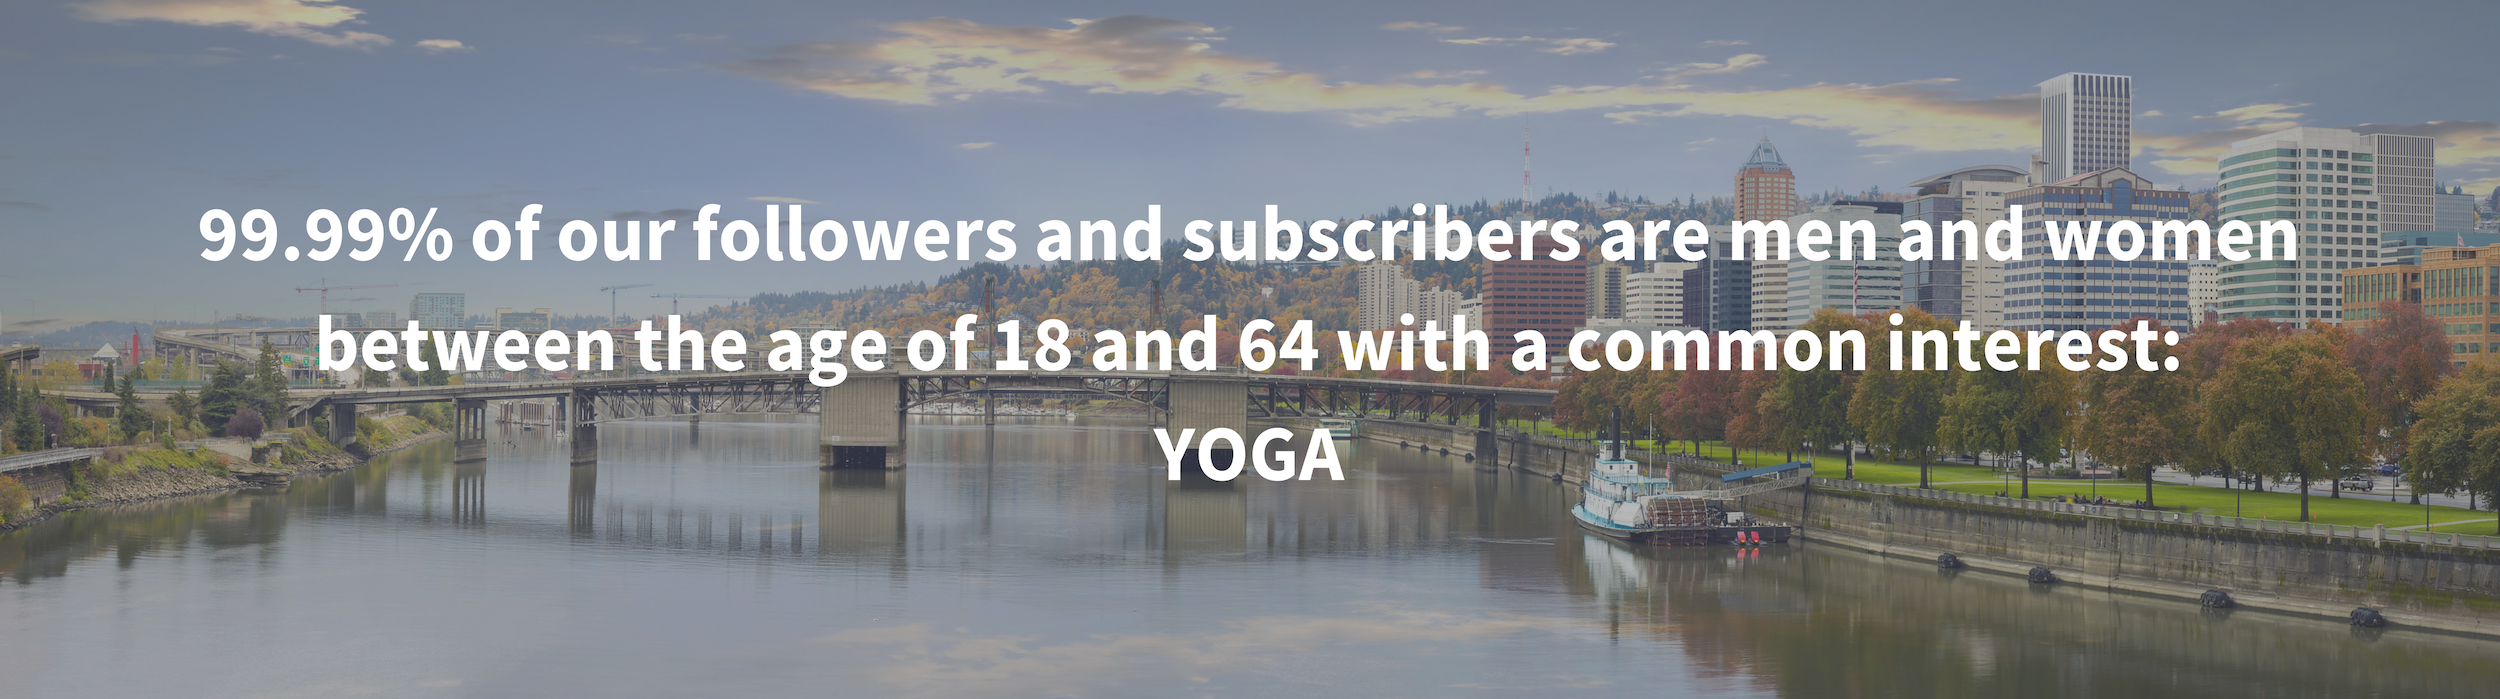 99.99% of our followers and subscribers are men and women between the age of 18 and 64 with a common interest_YOGA.png